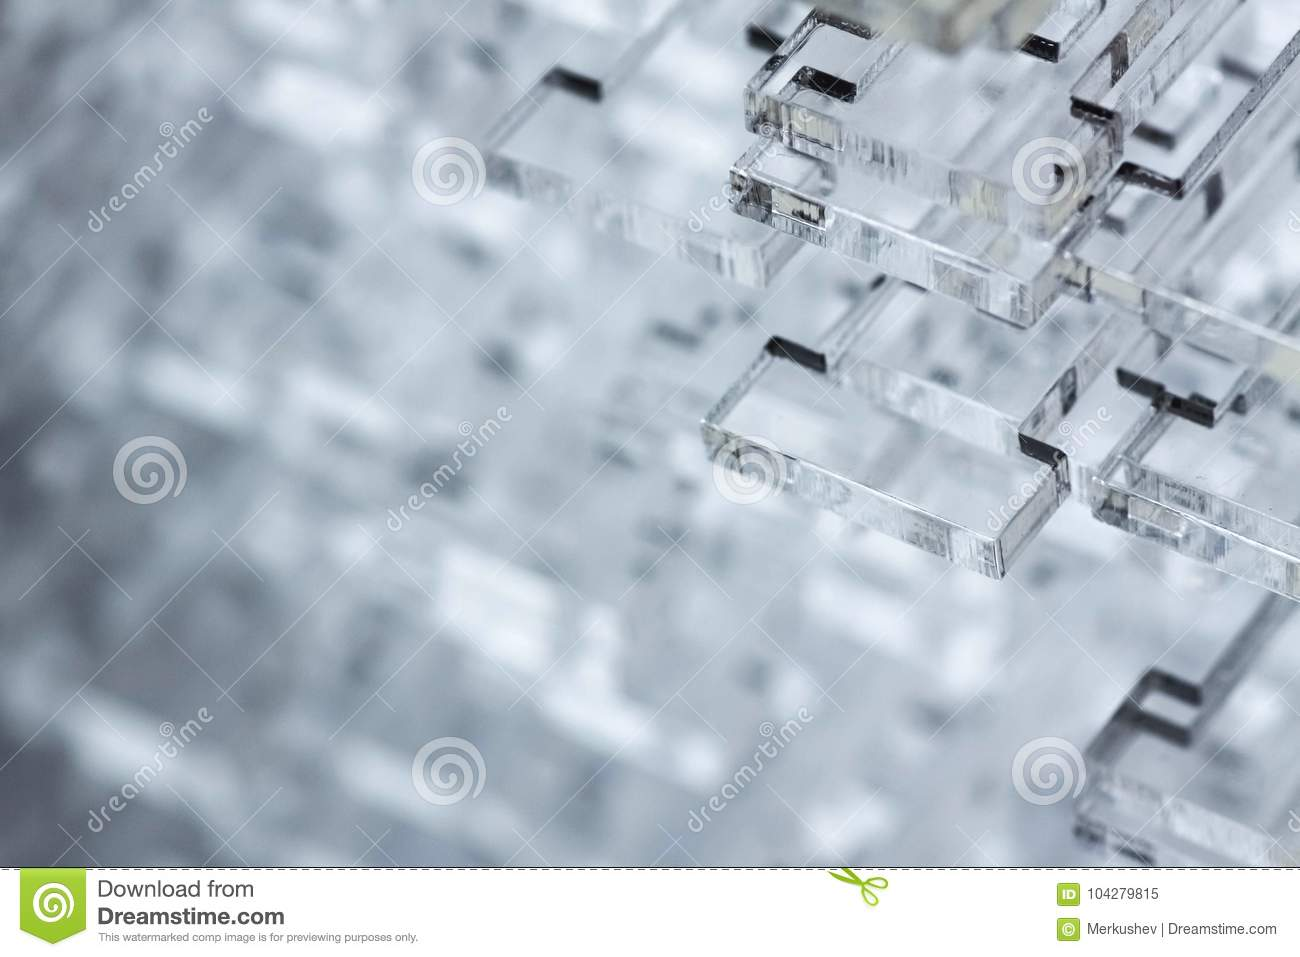 Download Abstract High-tech Background. Details Of Transparent Plastic Or Glass. Laser Cutting Of Plexiglass. Stock Image - Image of details, geometric: 104279815